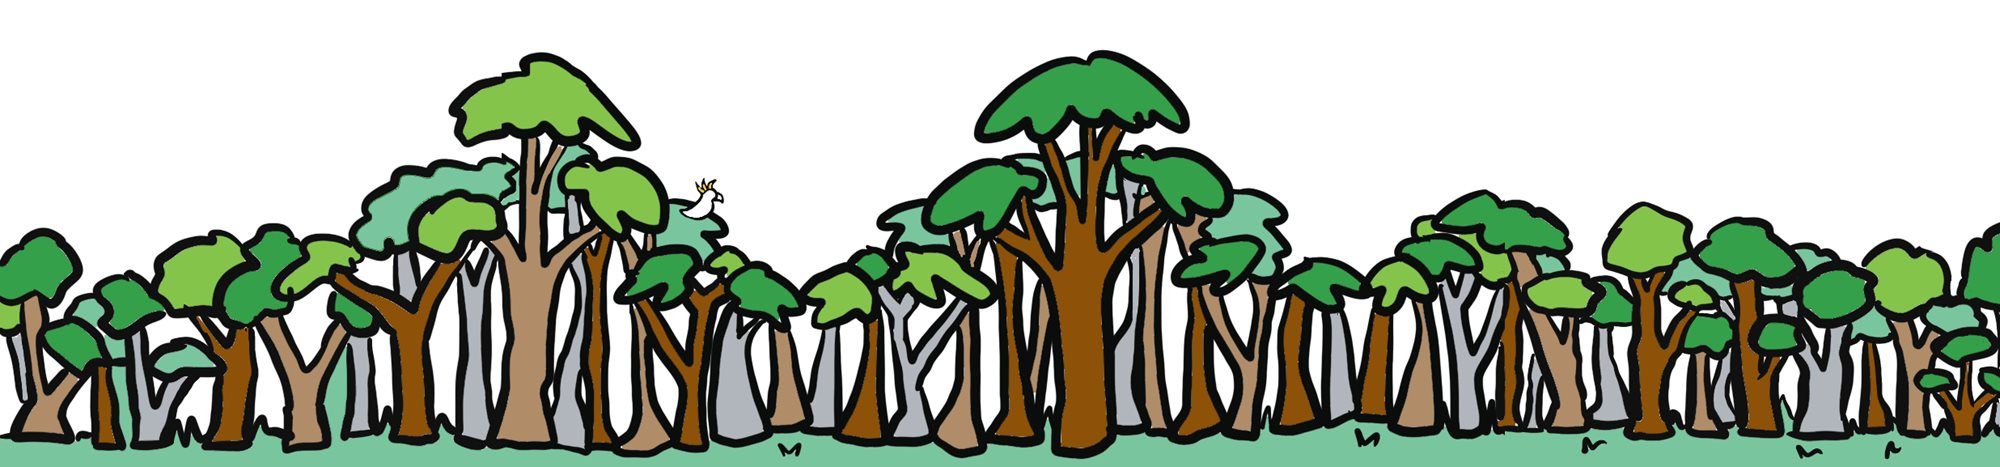 Colour comic banner of forest